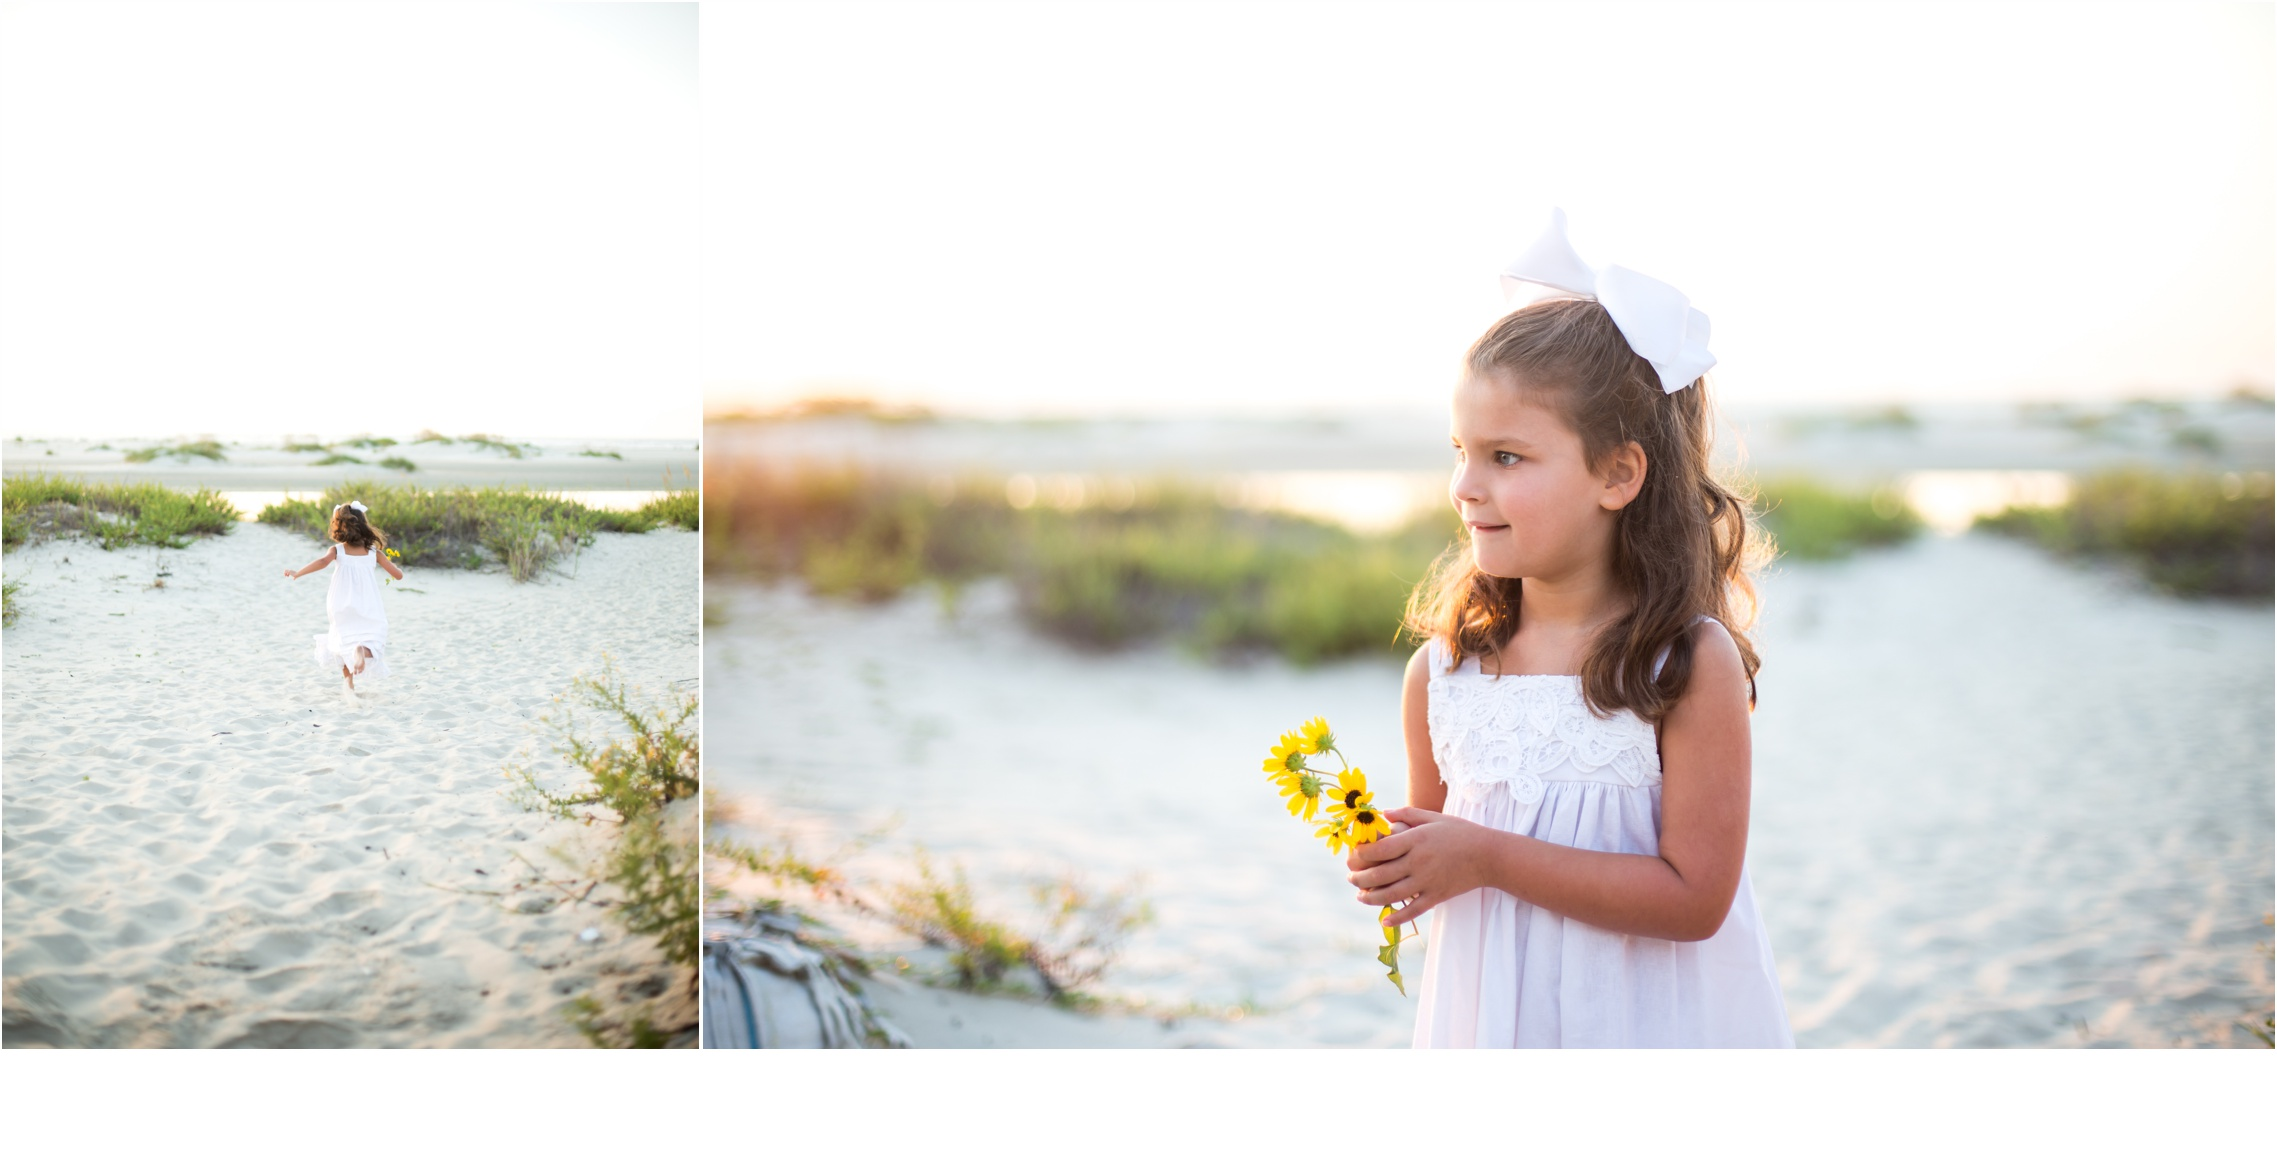 Rainey_Gregg_Photography_St._Simons_Island_Georgia_California_Wedding_Portrait_Photography_0175.jpg